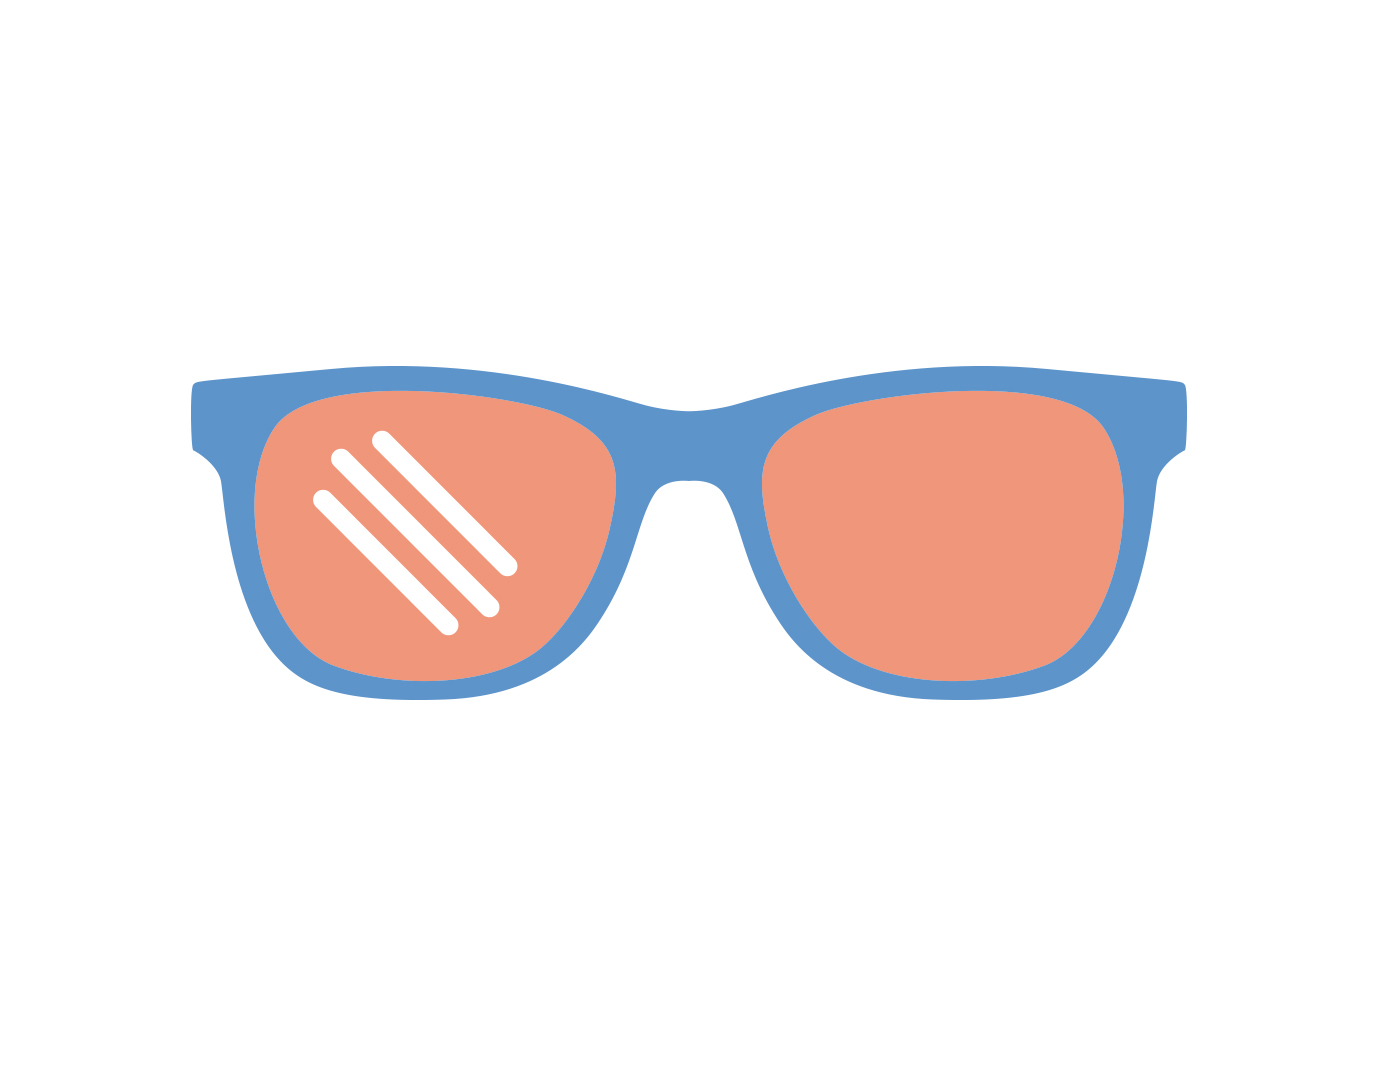 Icon of glasses with Polarized lenses